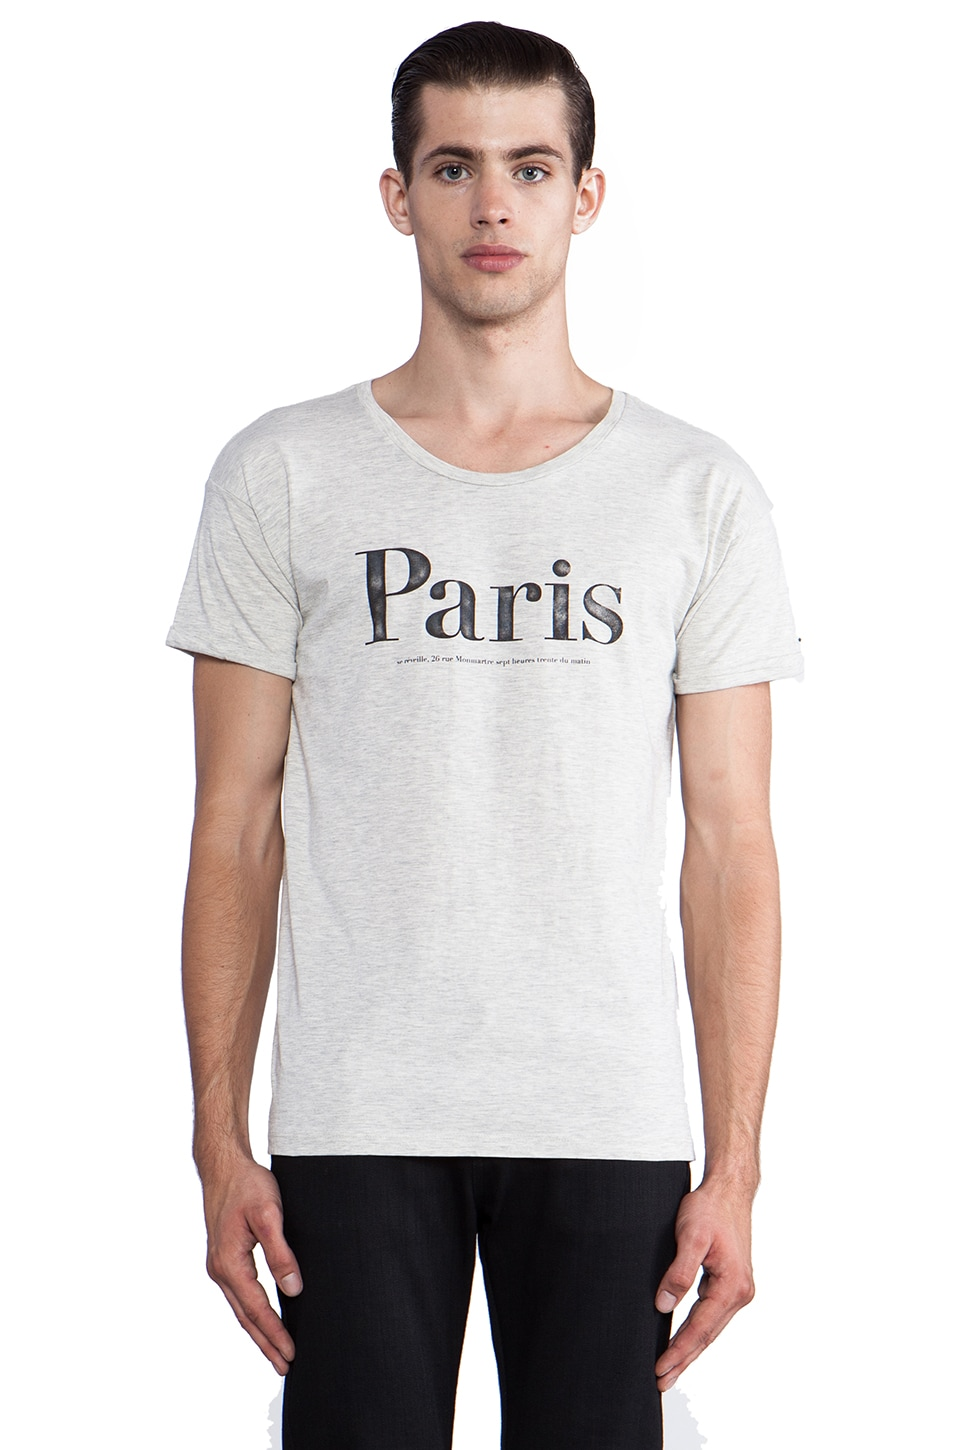 Scotch & Soda Paris Tee in Ecru Melange